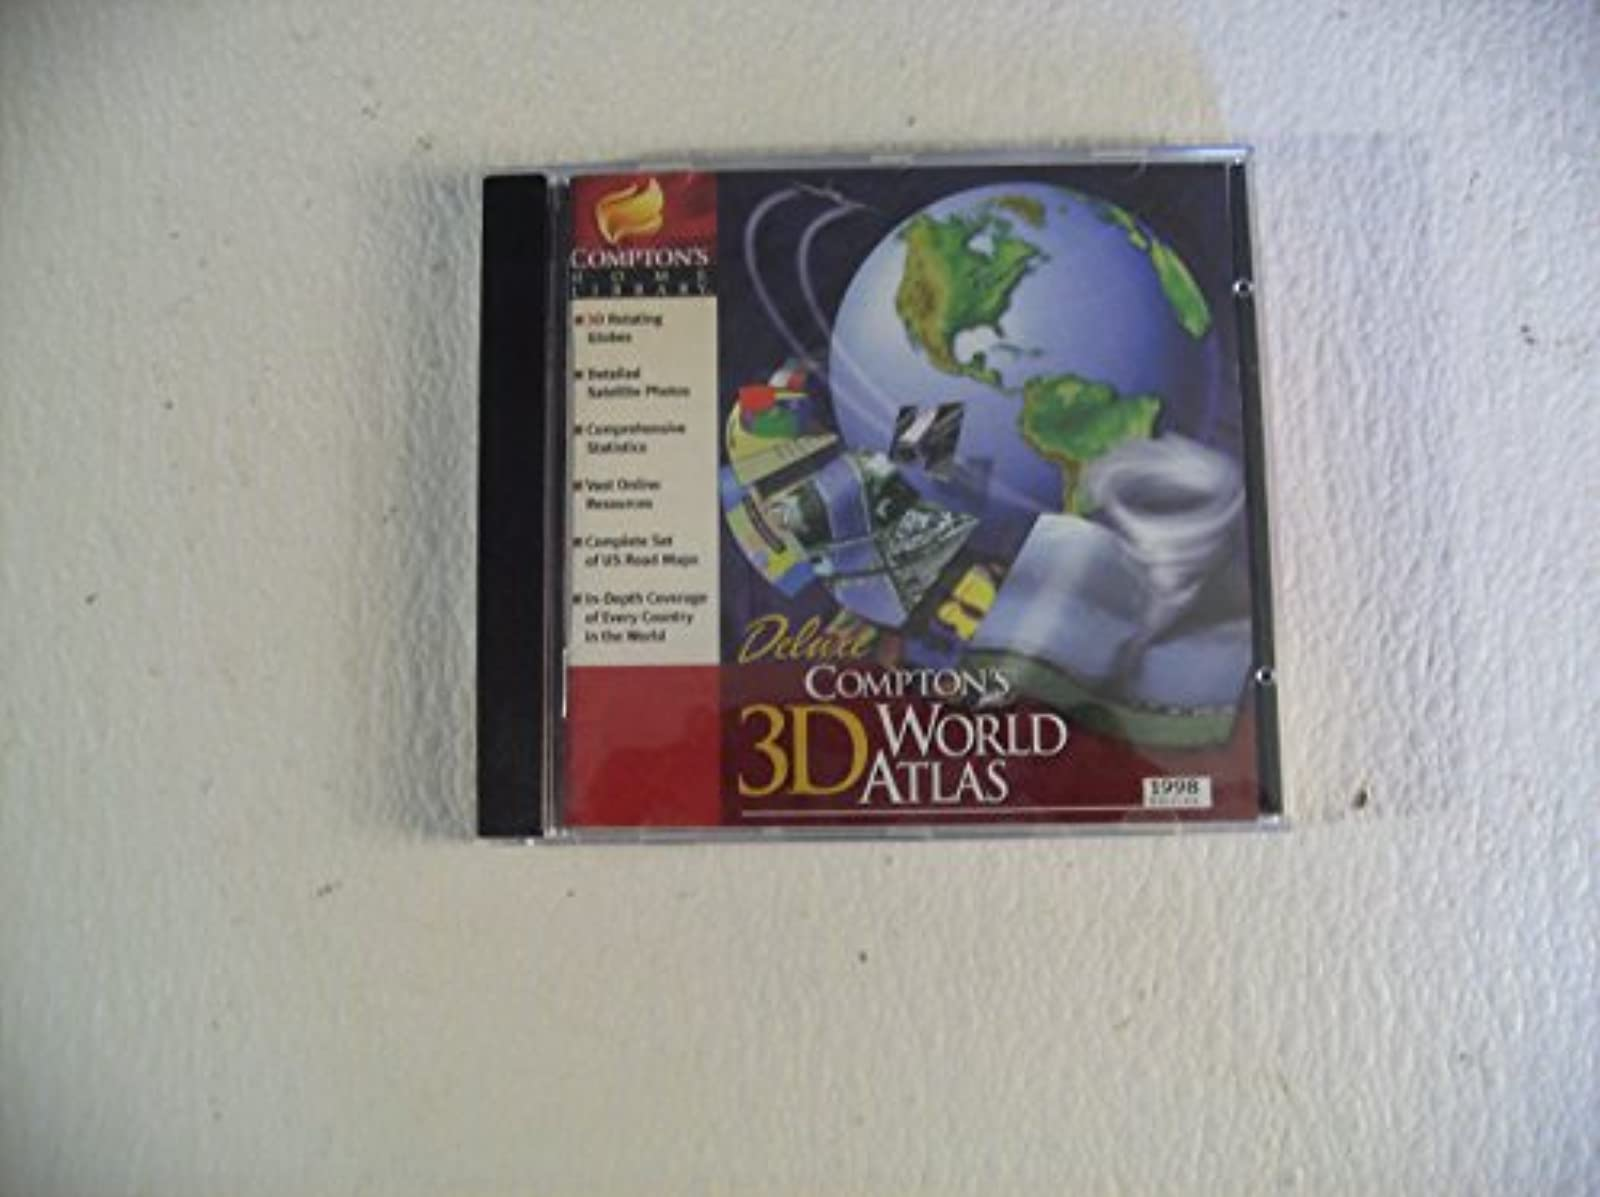 Deluxe Compton's 3D World Atlas Cd-Rom 1998 Edition Version 3.2